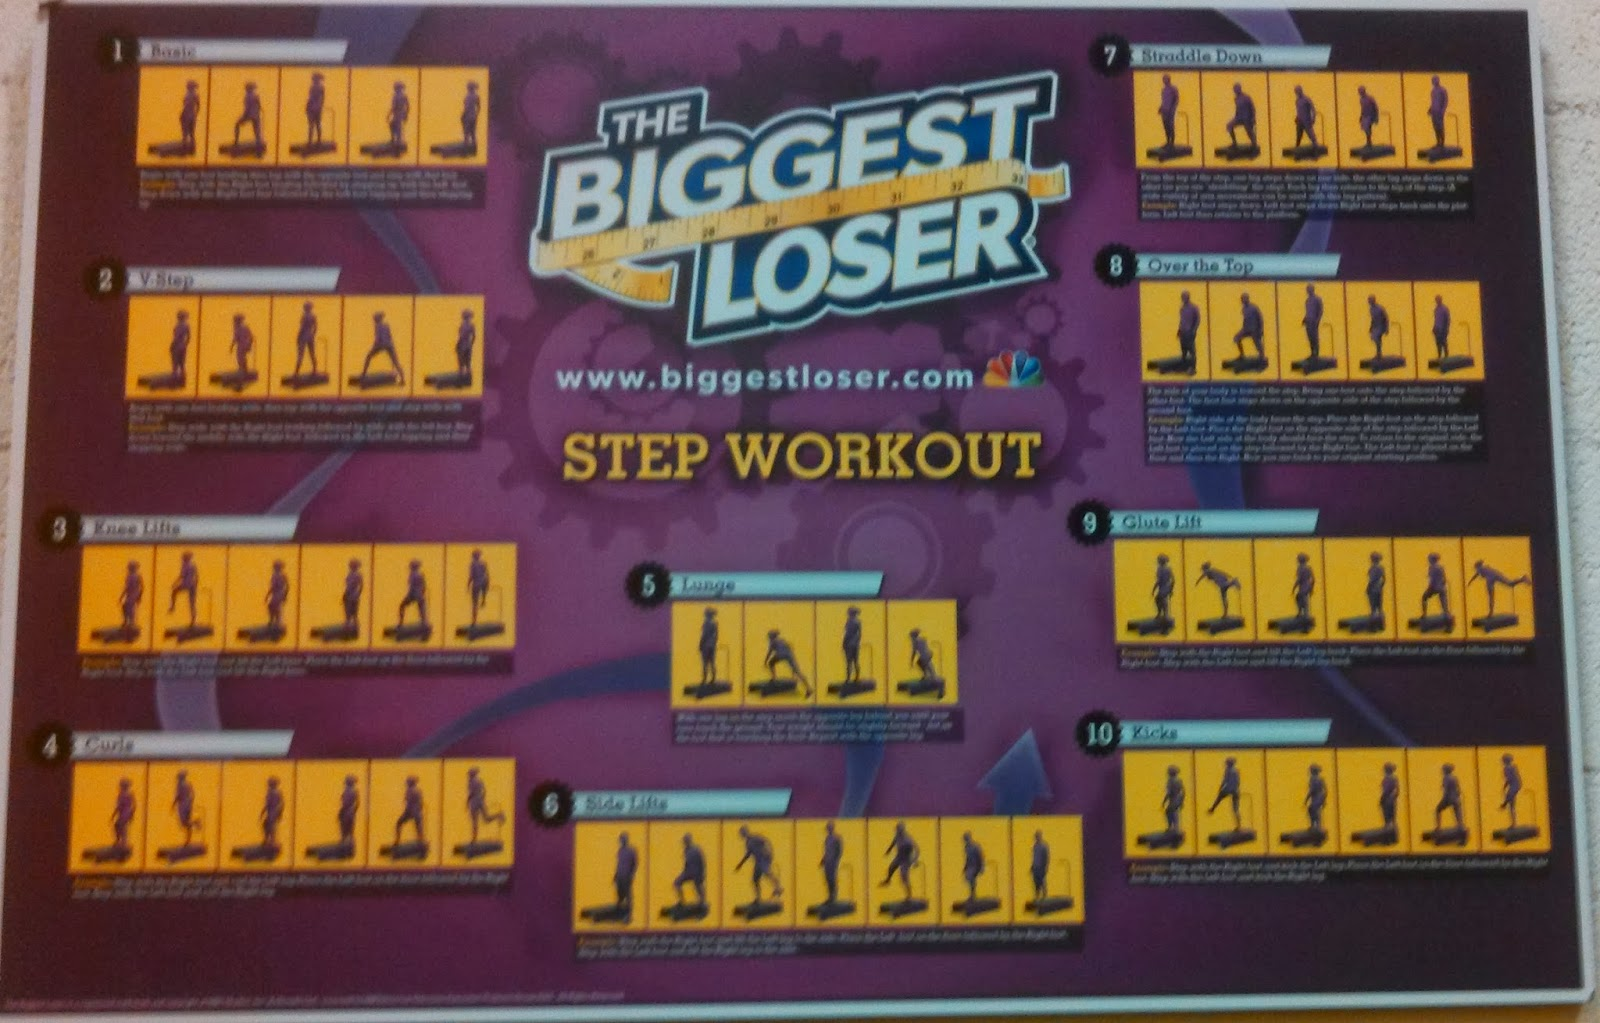 Journal of a Roly-Poly Princess: The 30 Minute Circuit at Planet Fitness